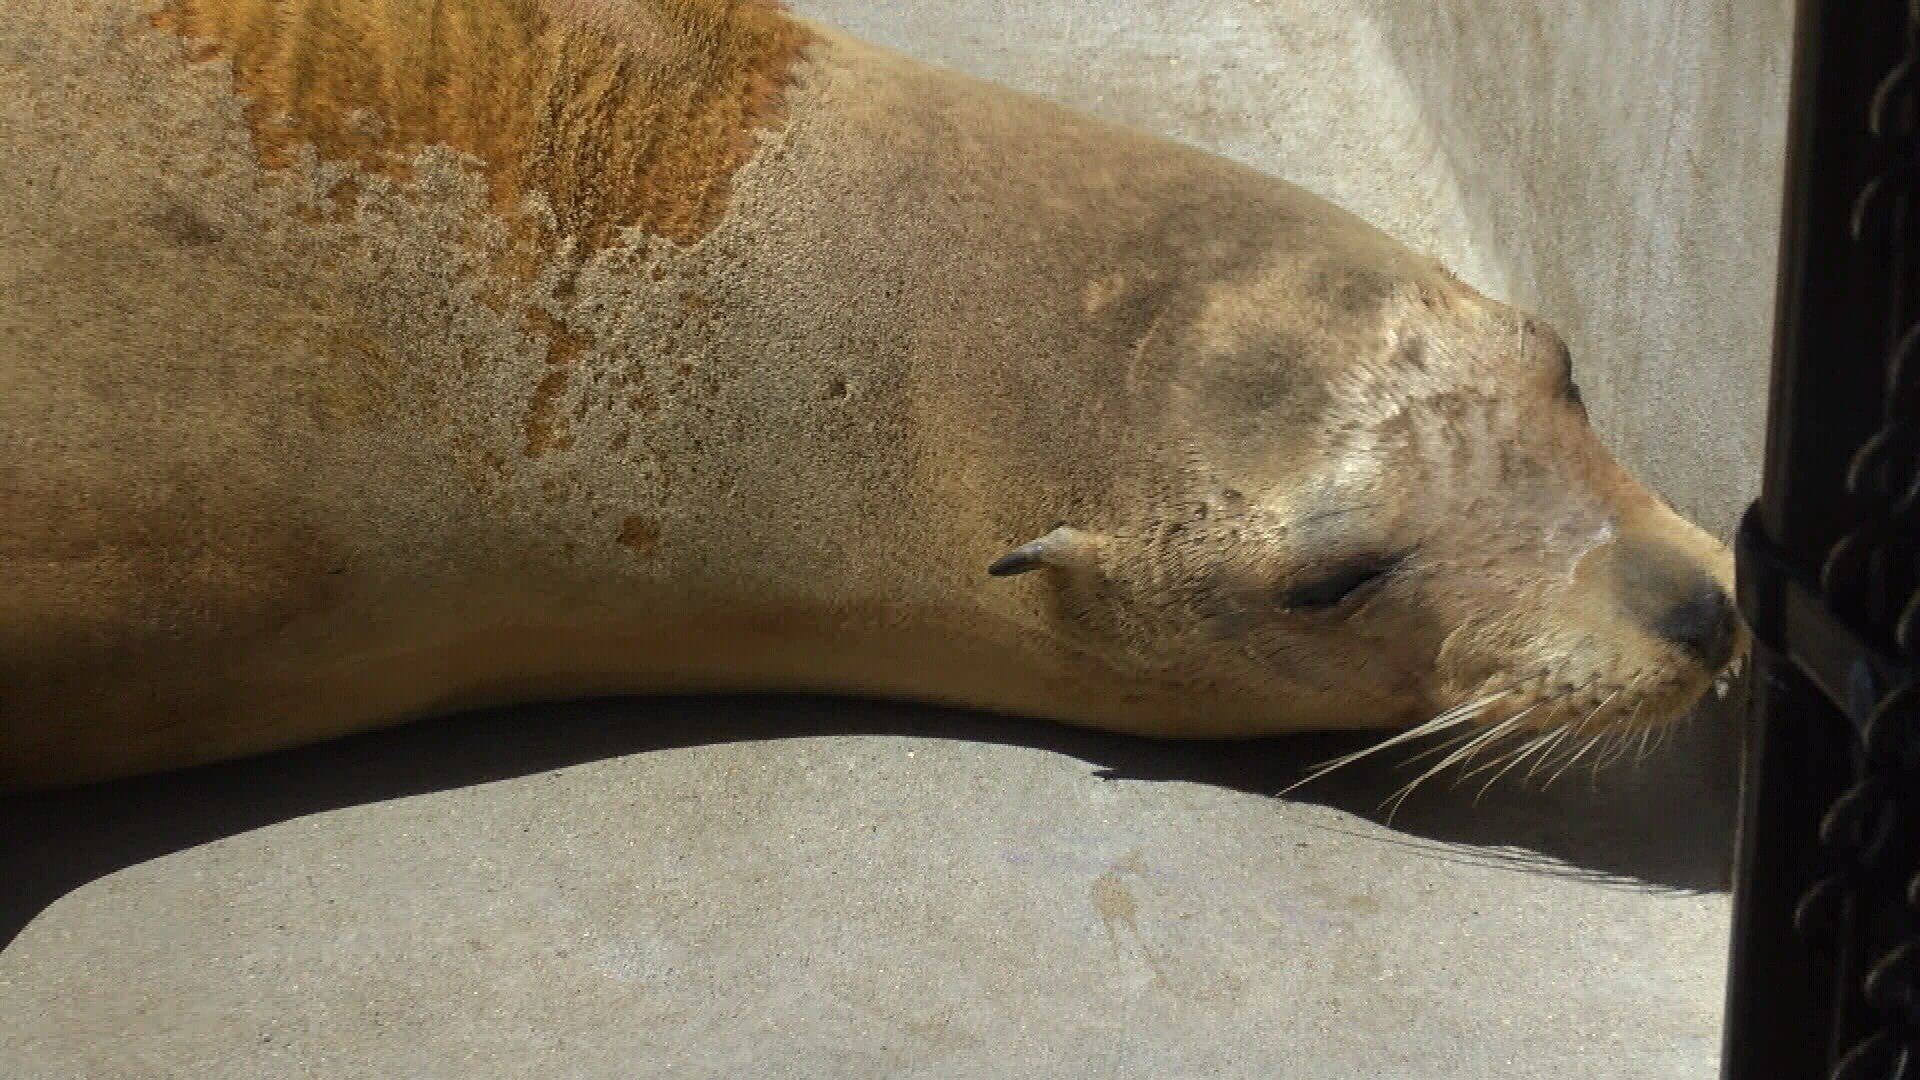 A sick sea lion at the Marine Mammal Center in Morro Bay. (KSBY photo)